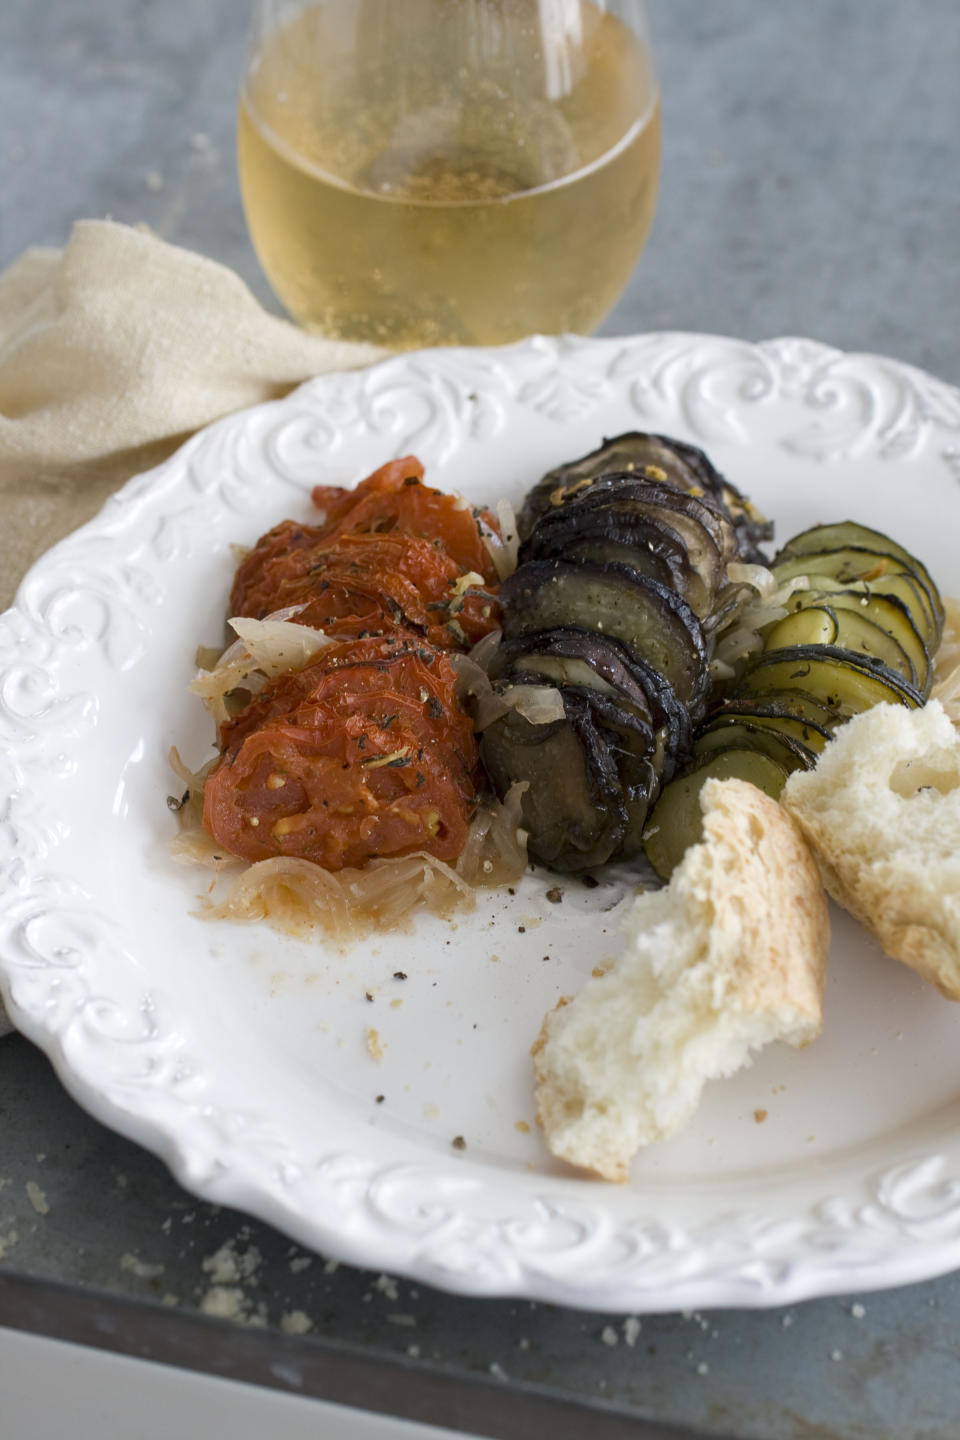 In this image taken on April 15, 2013, ratatouille tian is shown served on a plate in Concord, N.H. (AP Photo/Matthew Mead)